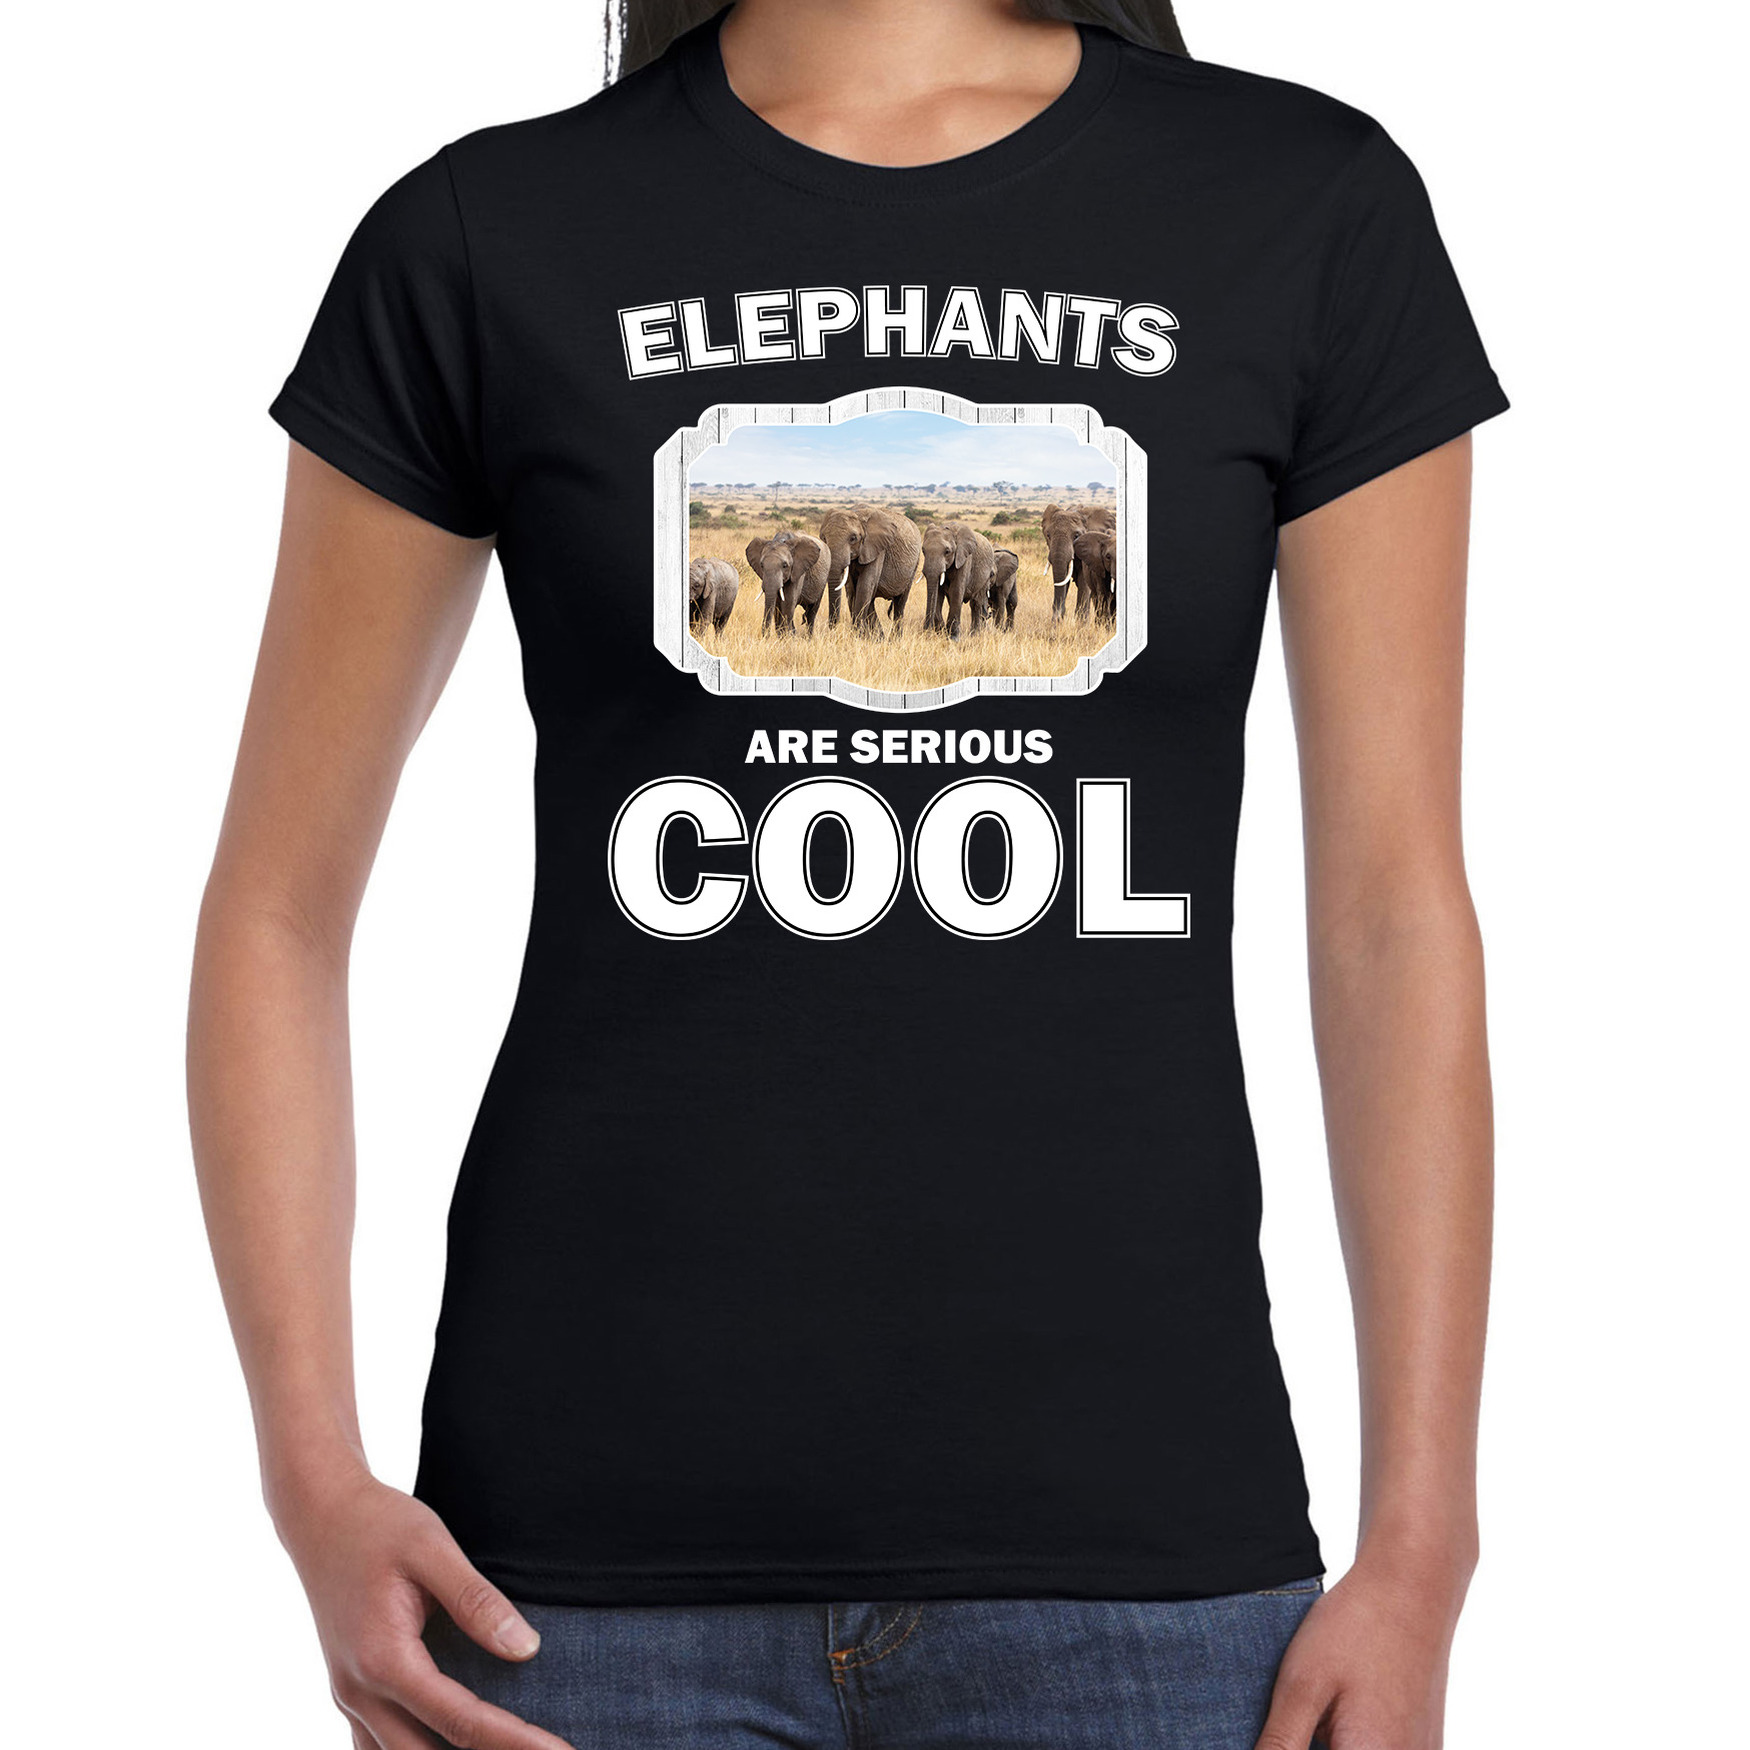 T-shirt elephants are serious cool zwart dames - kudde olifanten/ olifant shirt